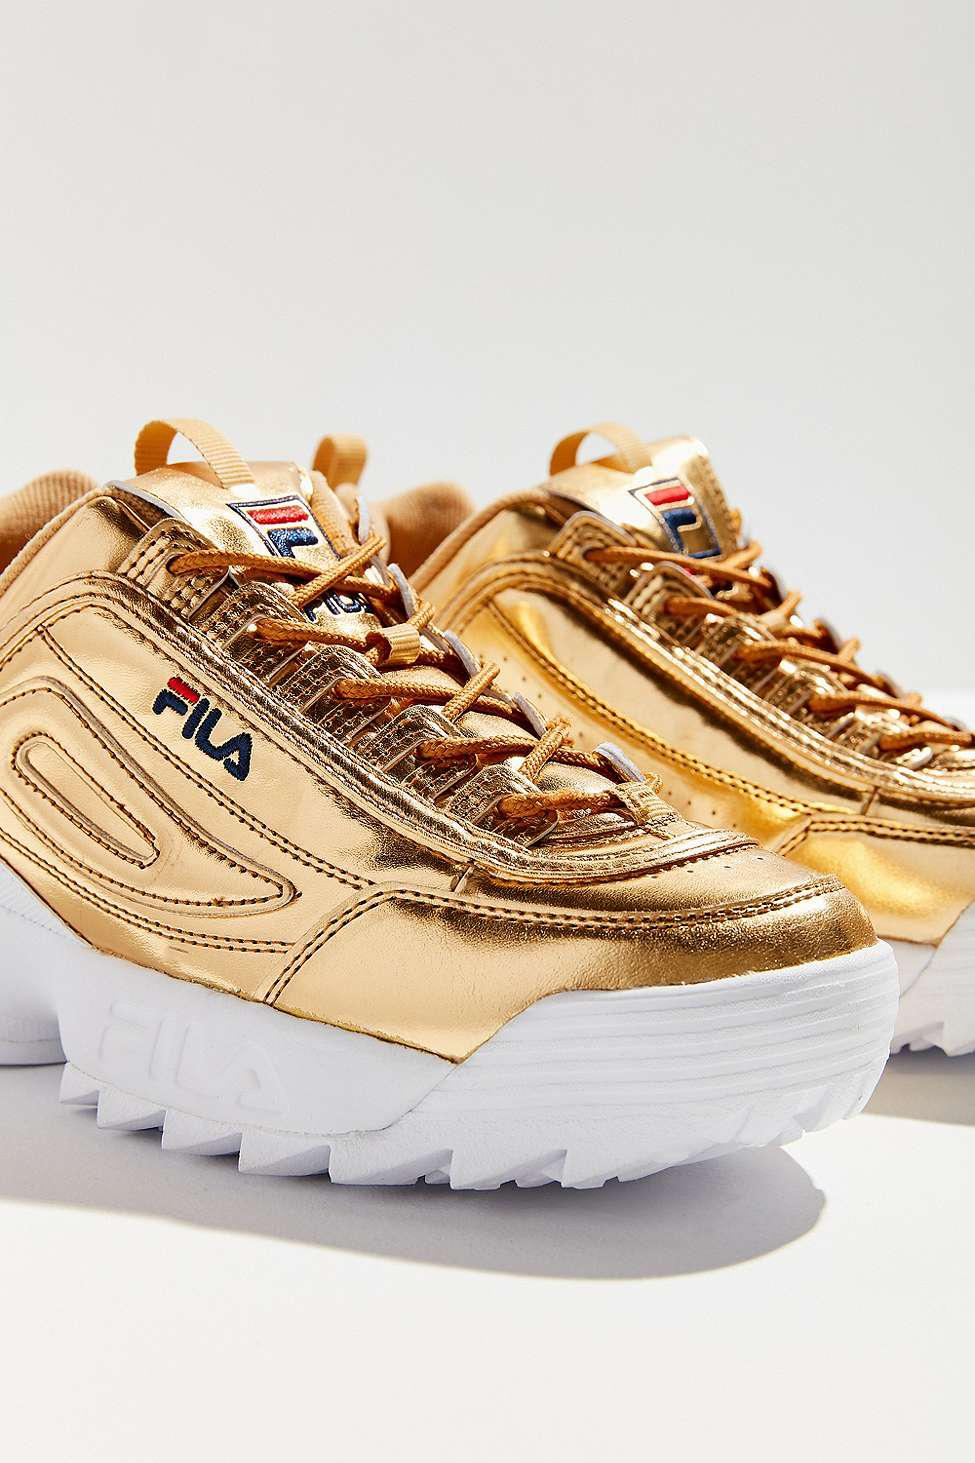 cfbe1048930 Fila Disruptor Ii Premium Metal Gold Trainers - Womens Uk 8 in ...